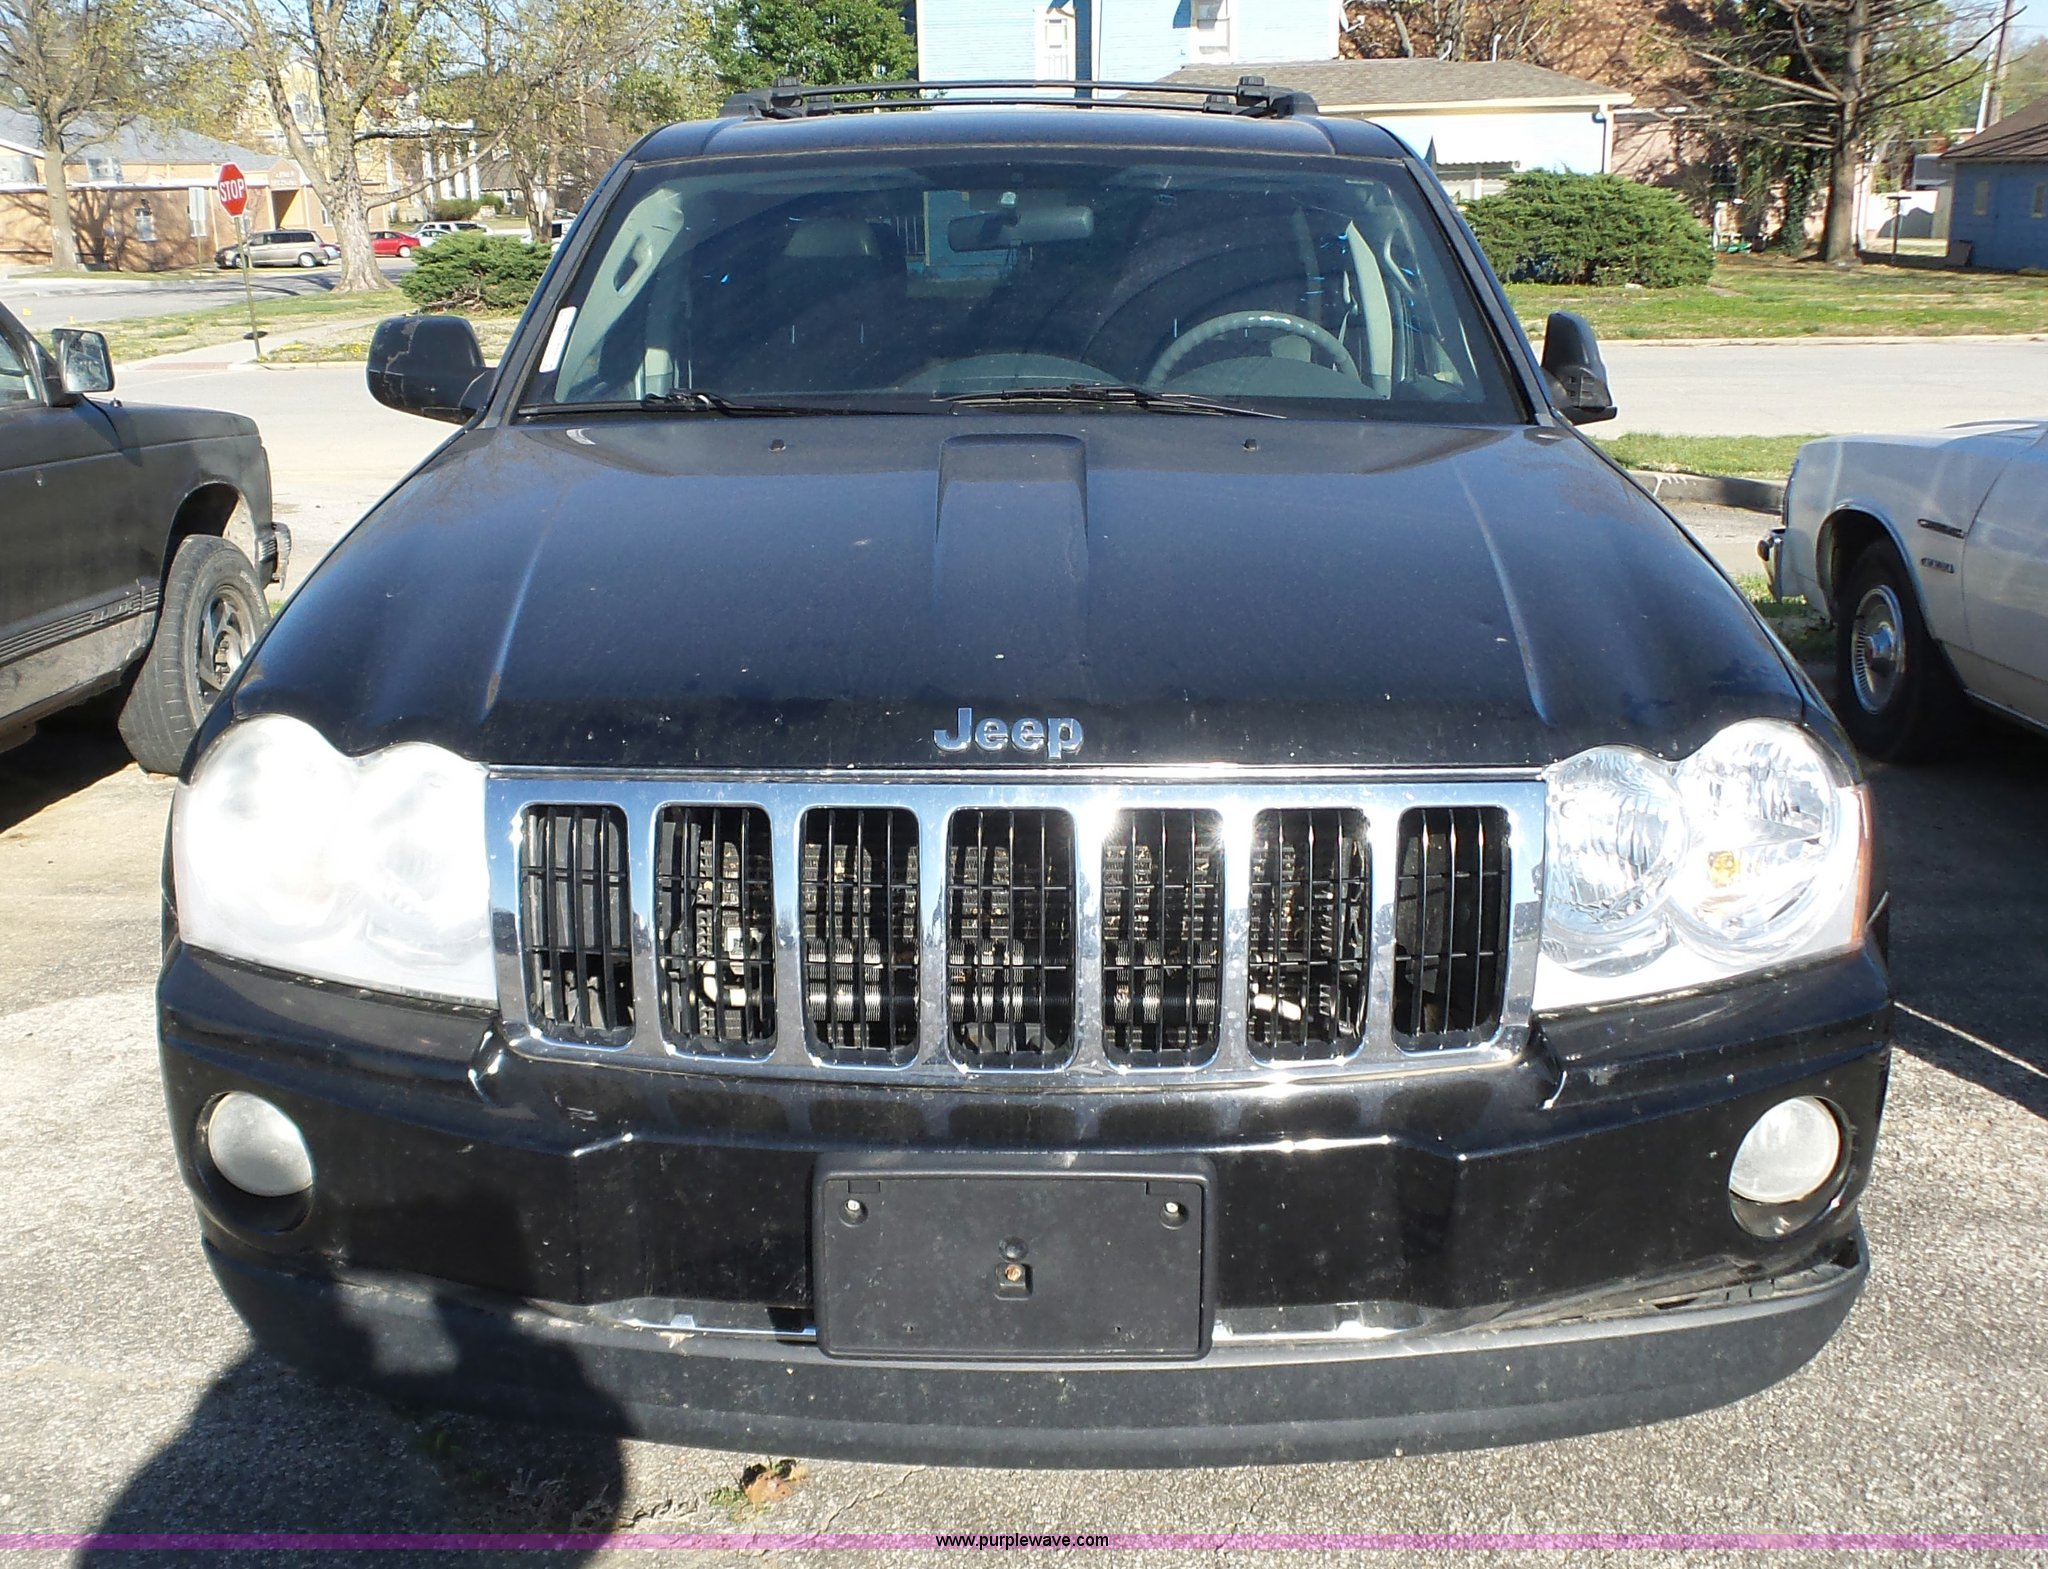 2005 Jeep Grand Cherokee Limited Suv Item Bl9727 Sold A Full Size In New Window